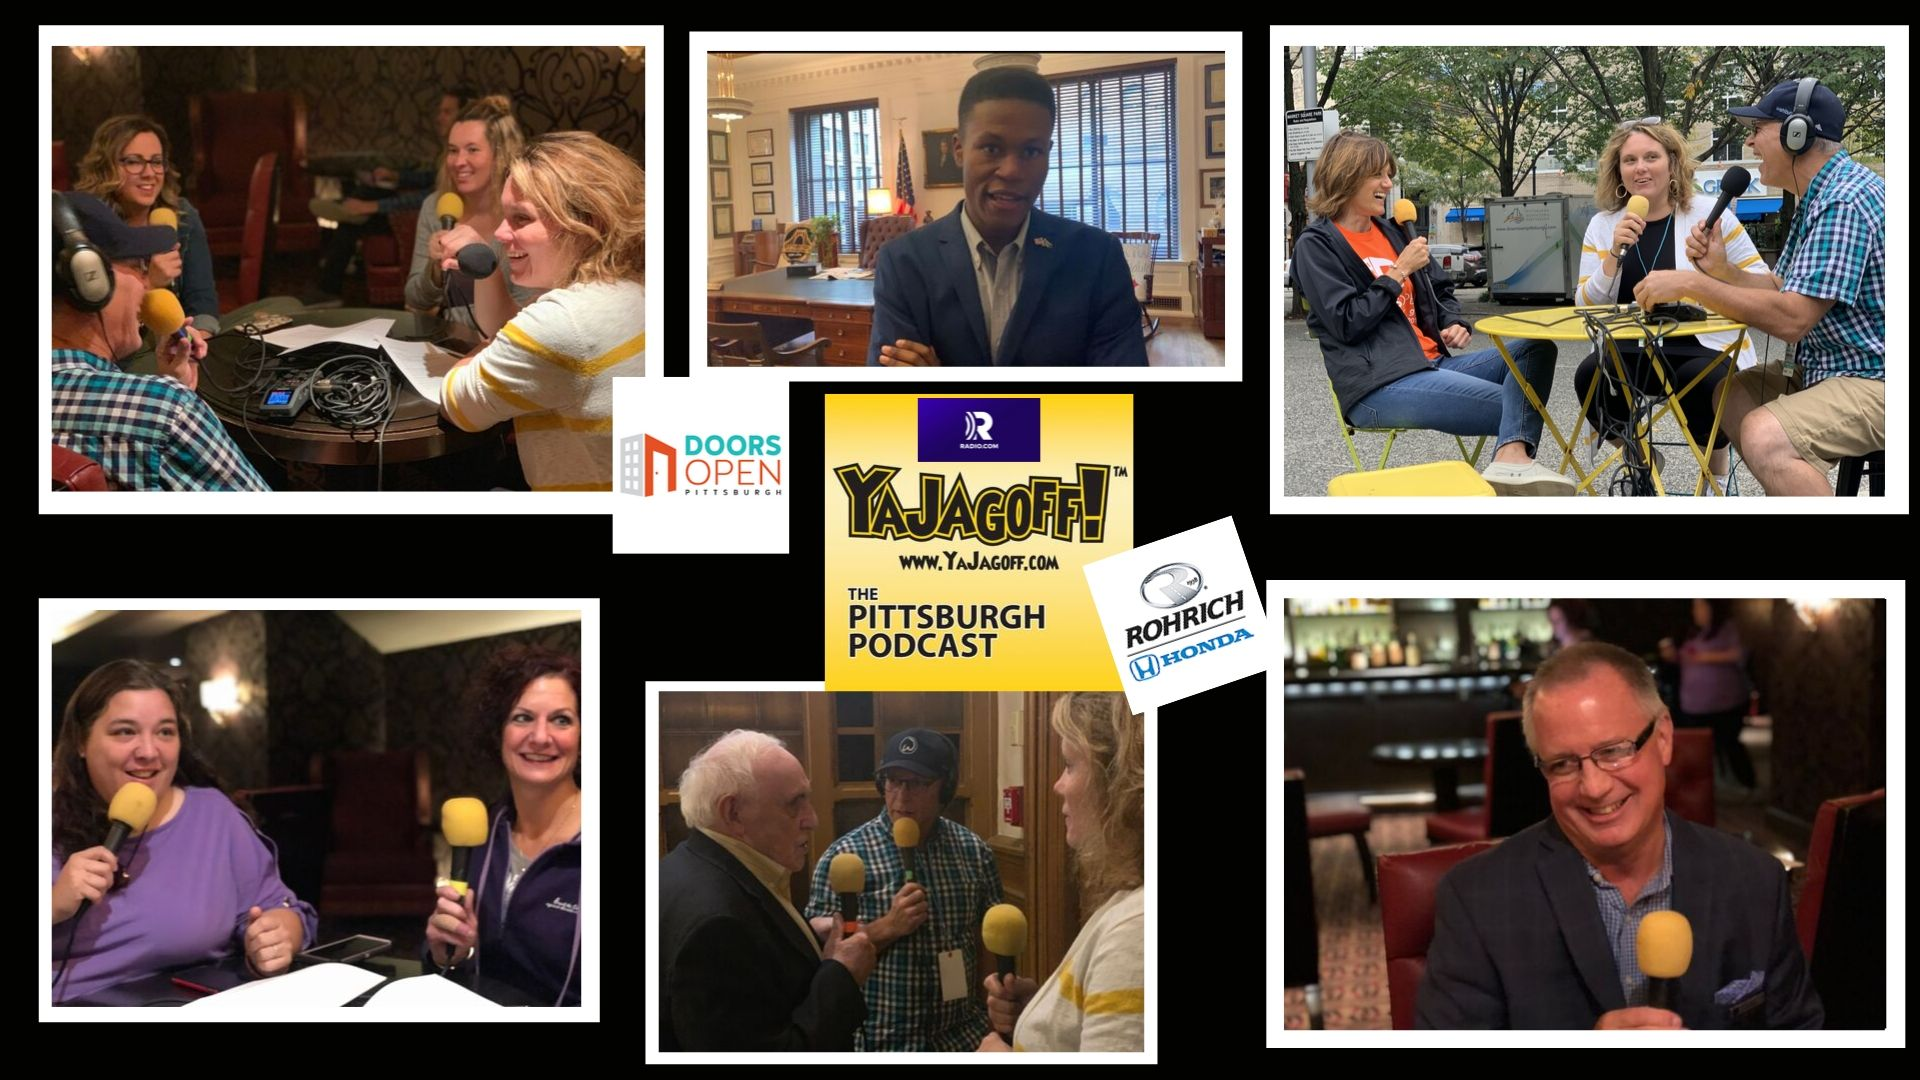 YaJagoff Podcast Collage - Doors Open Pittsburgh